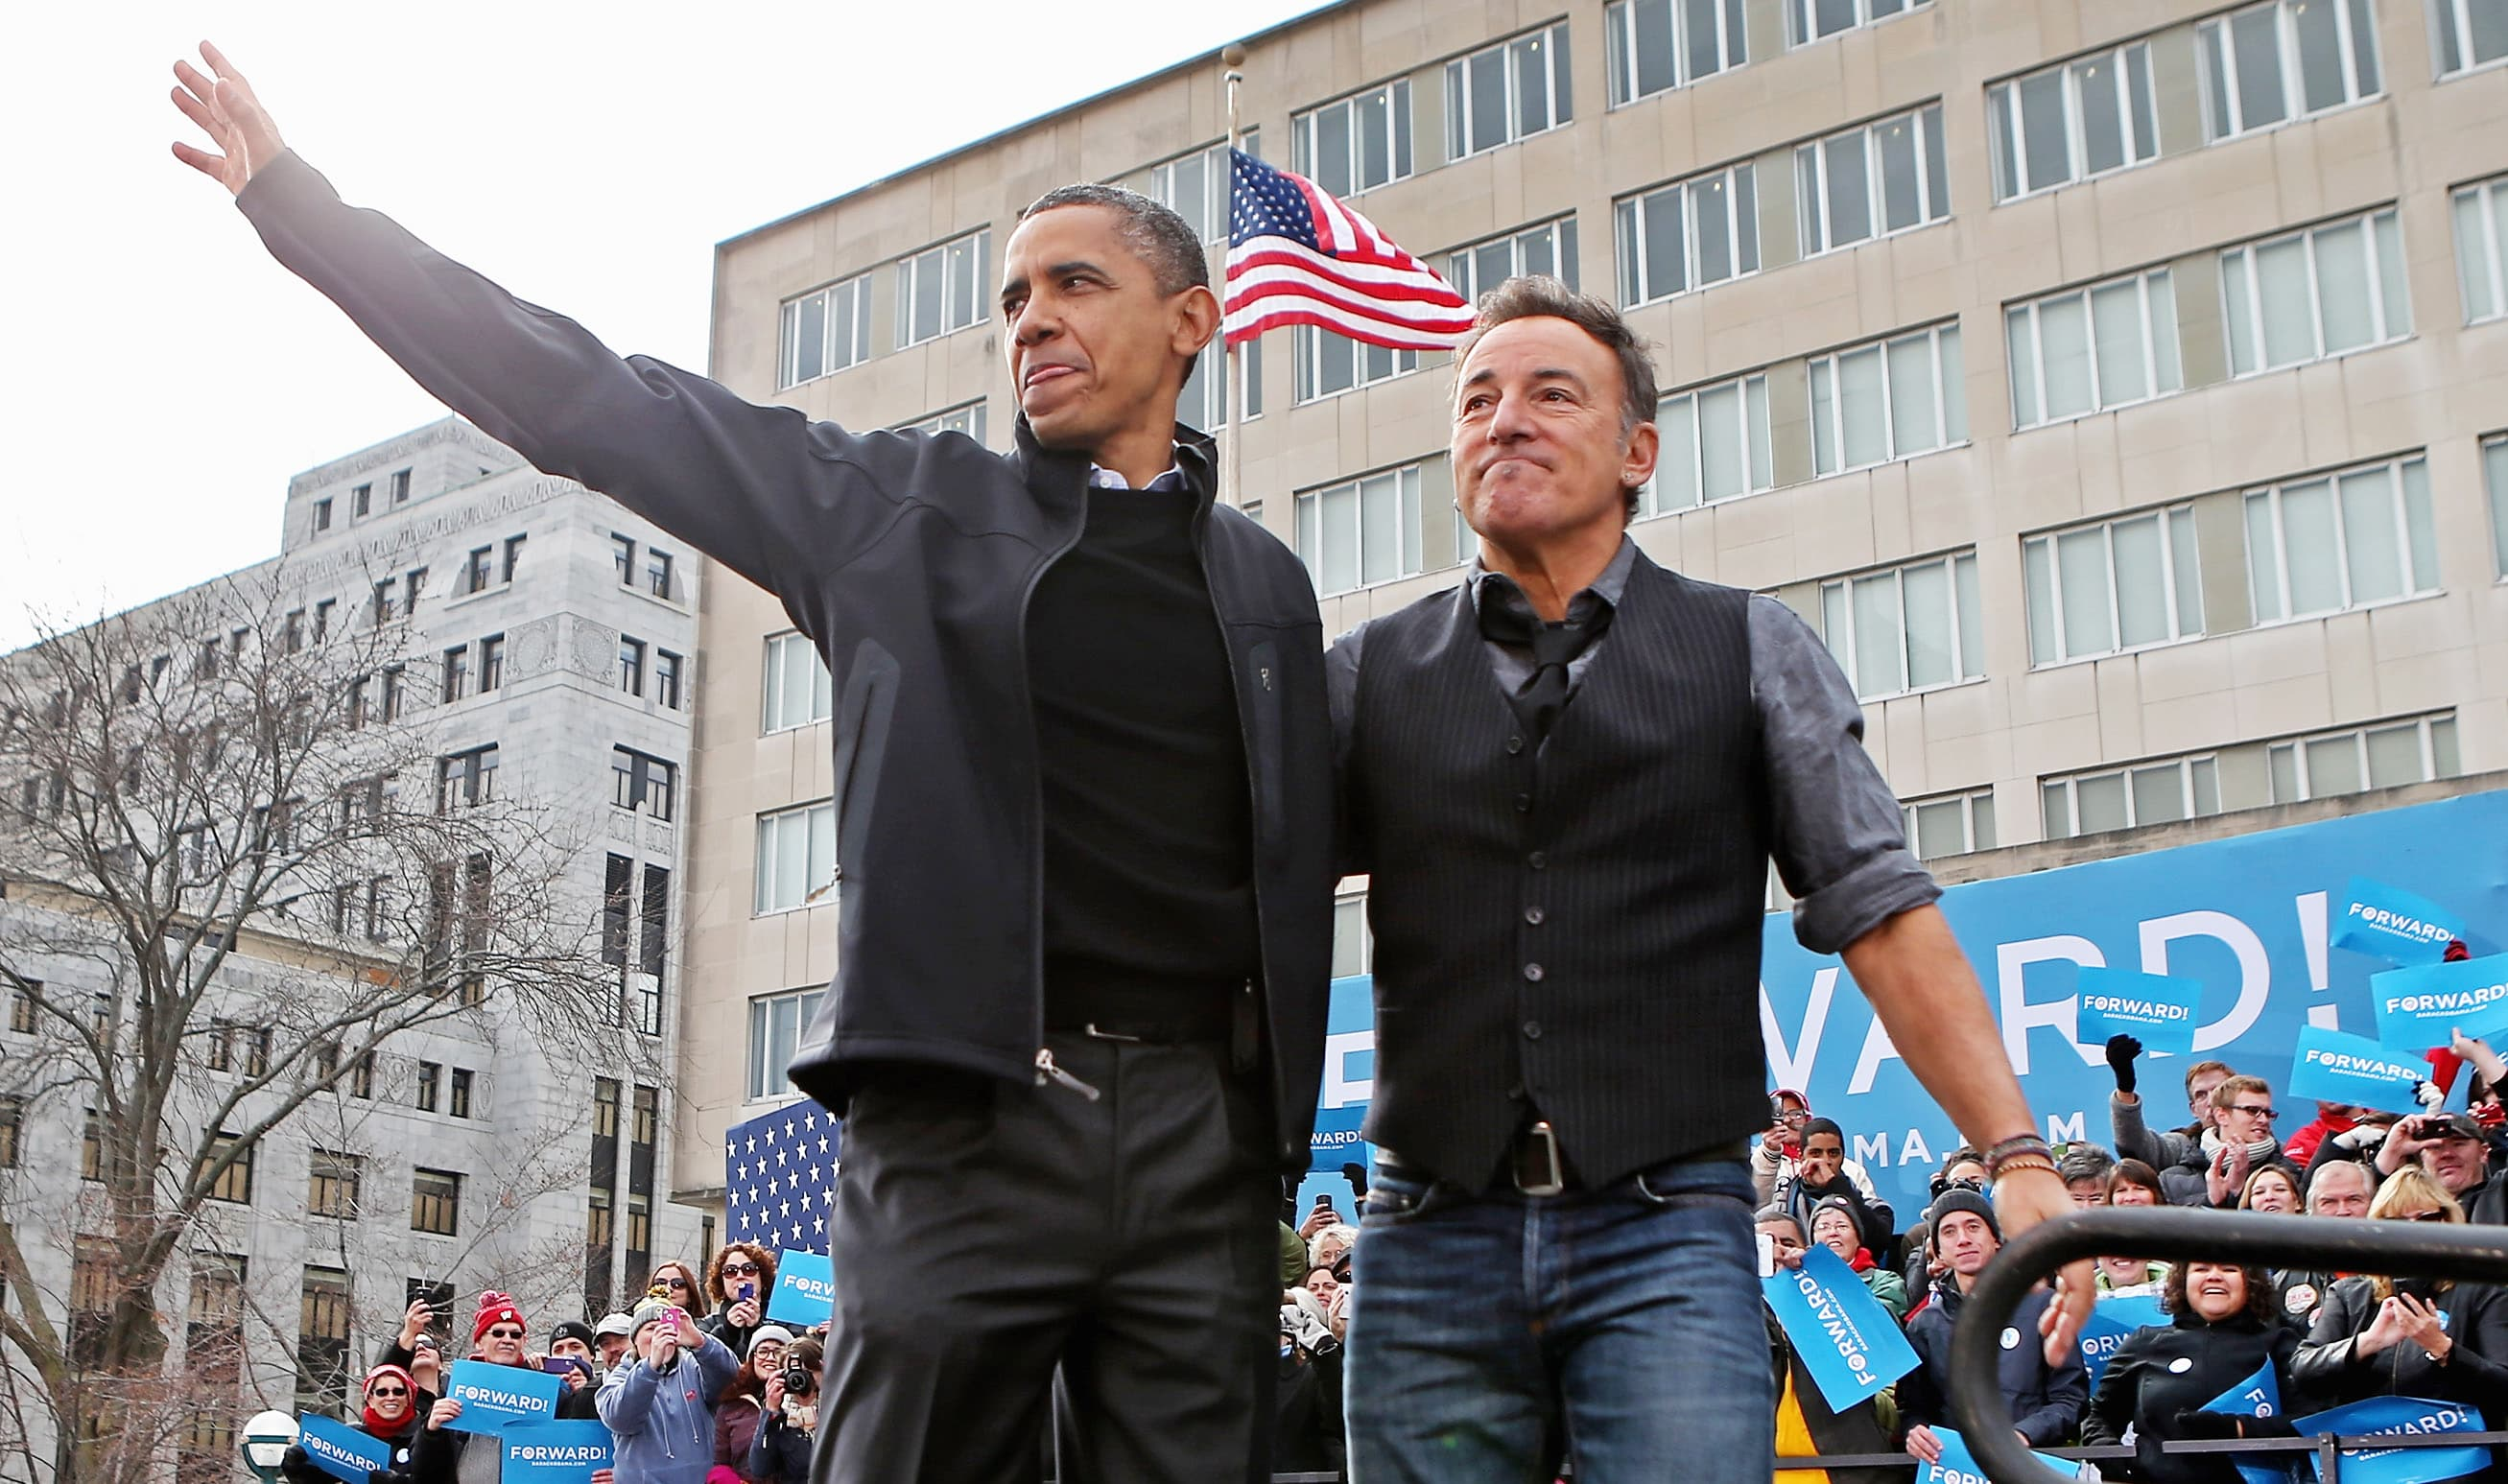 Barack Obama and Bruce Springsteen podcast 'Renegades' coming to Spotify